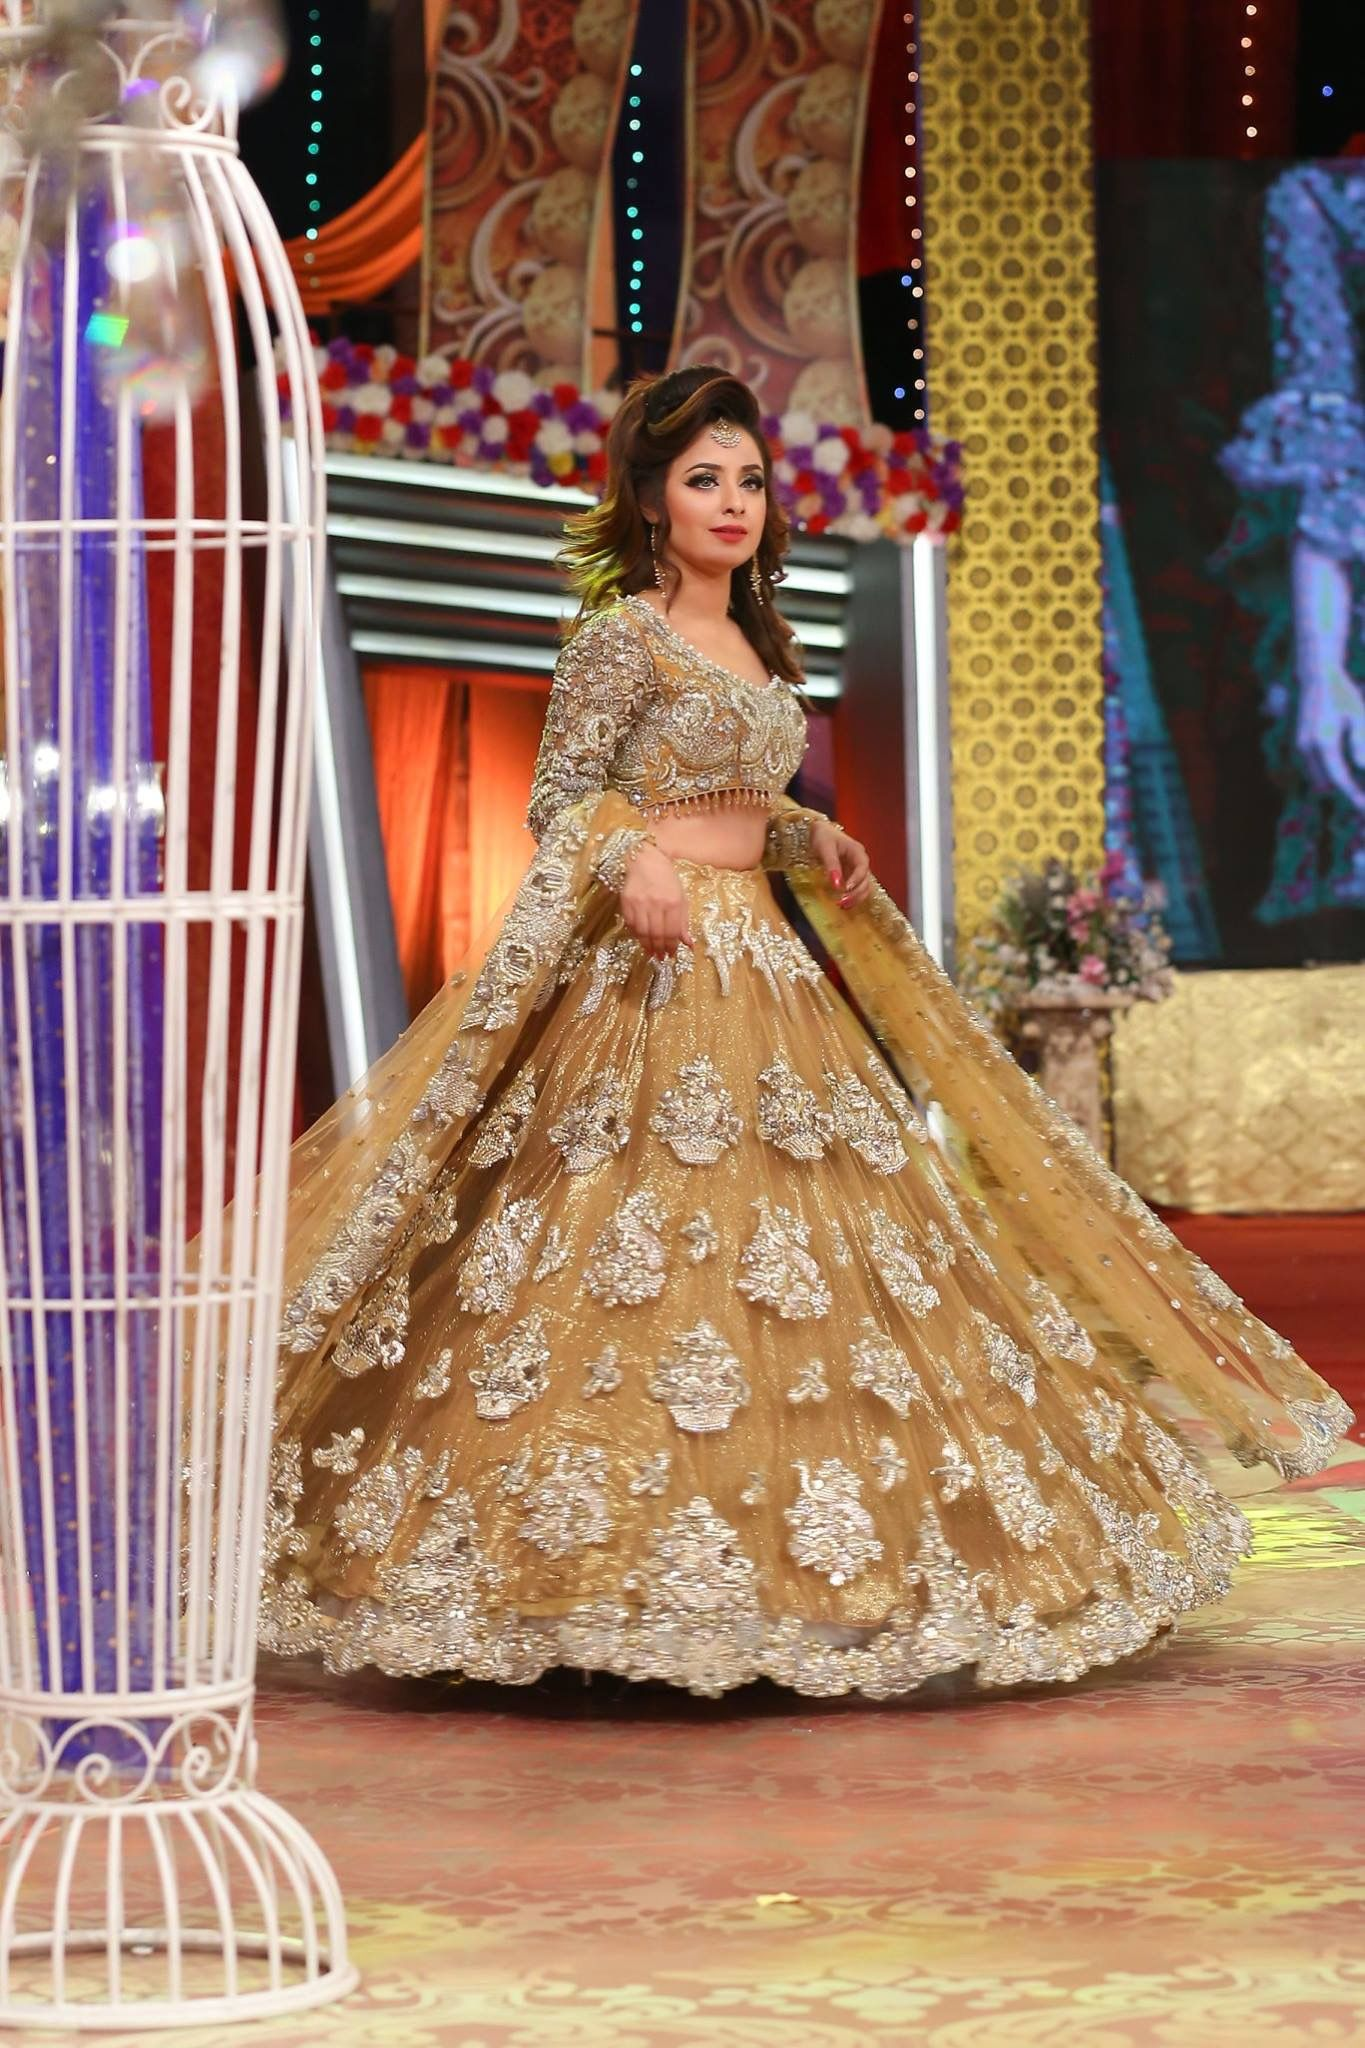 32bd3be4c1 Mizz Noor is able to produce a wide selection of #Indian #Pakistani #wedding  #engagement #dresses Tailor made to your measurements to give that stunning  ...